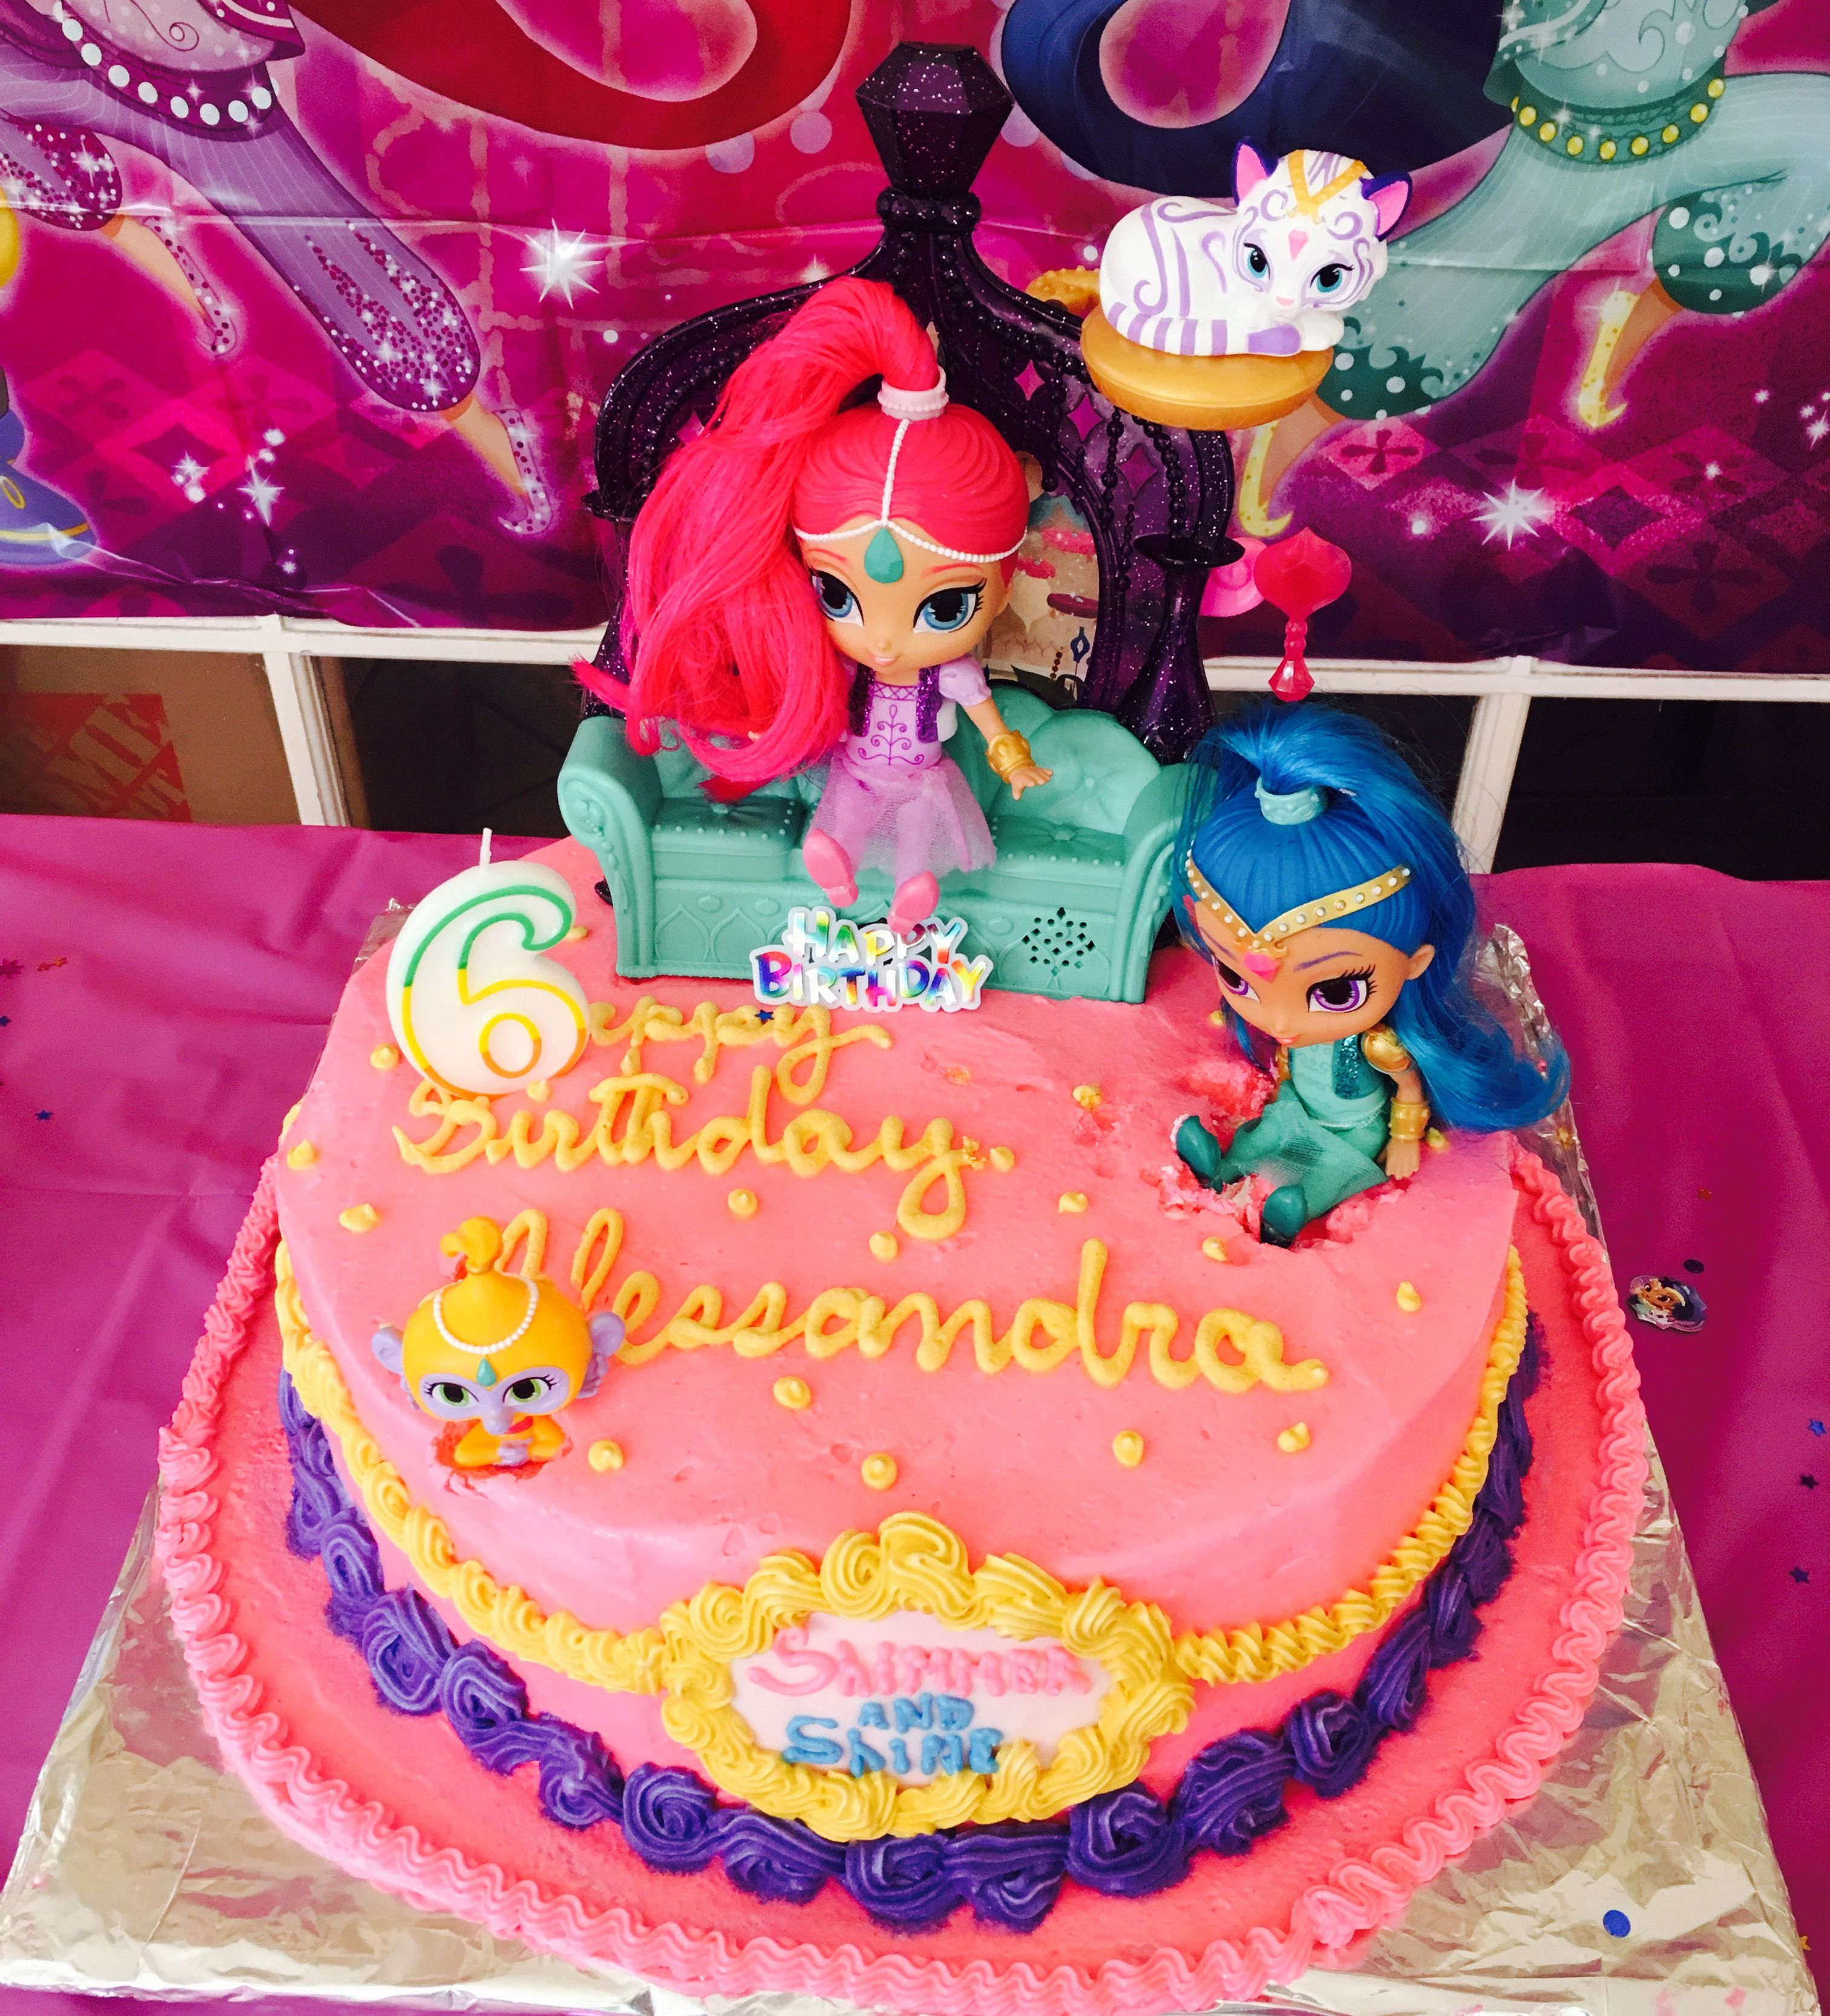 Shimmer and Shine cake